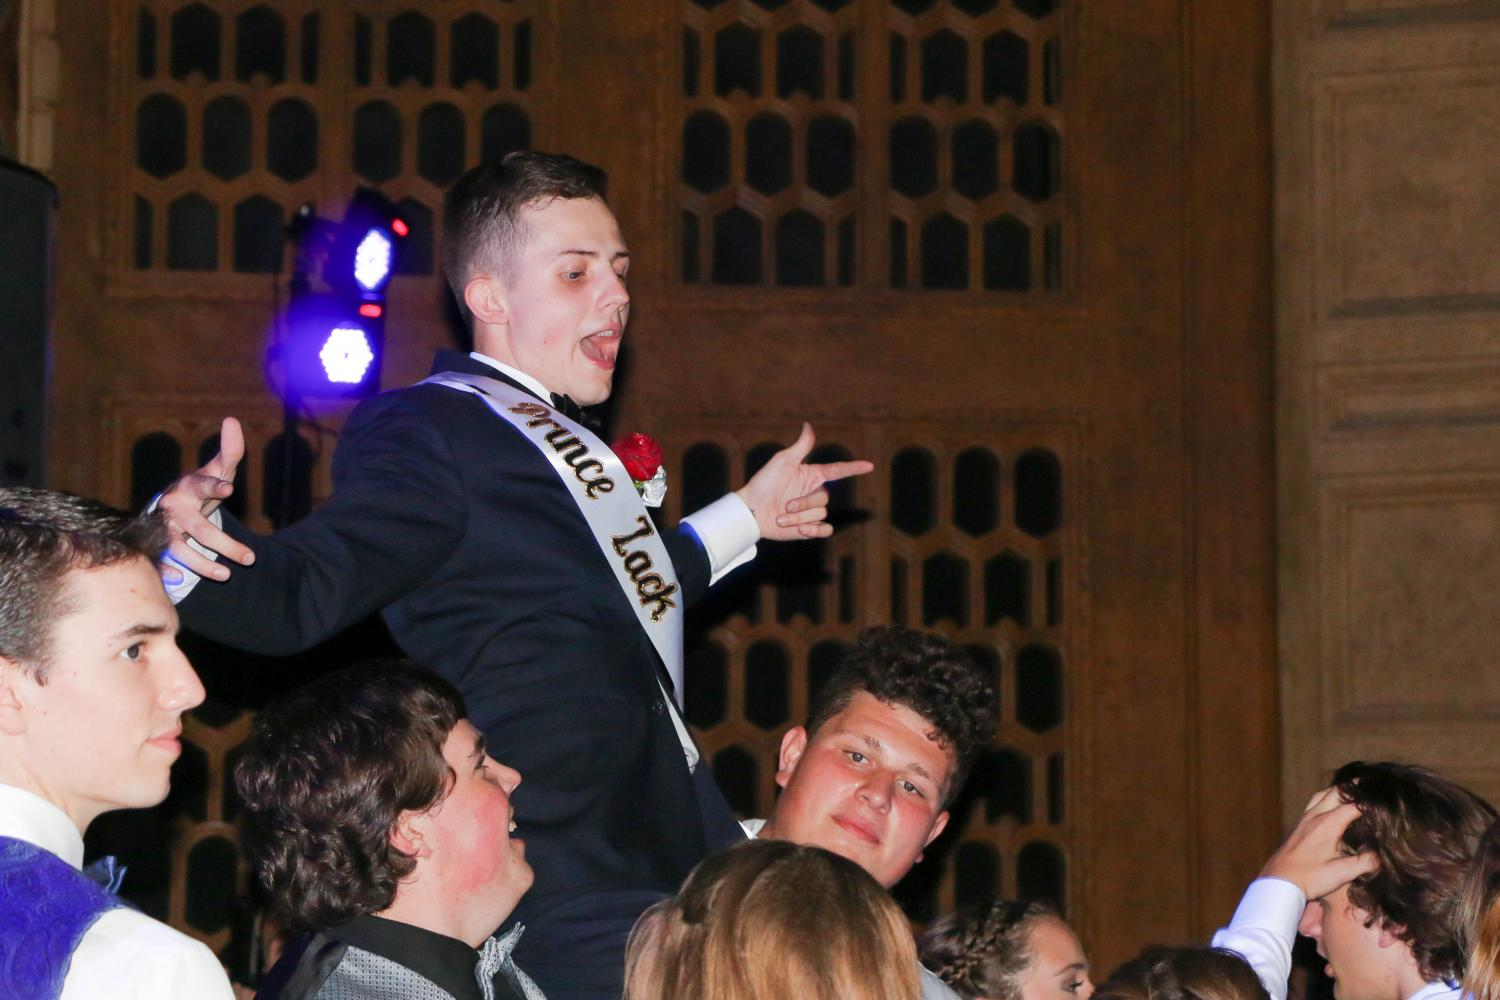 Last+years+prom+king%2C+Zack+Dean%2C+being+lifted+by+the+crowd+at+prom.